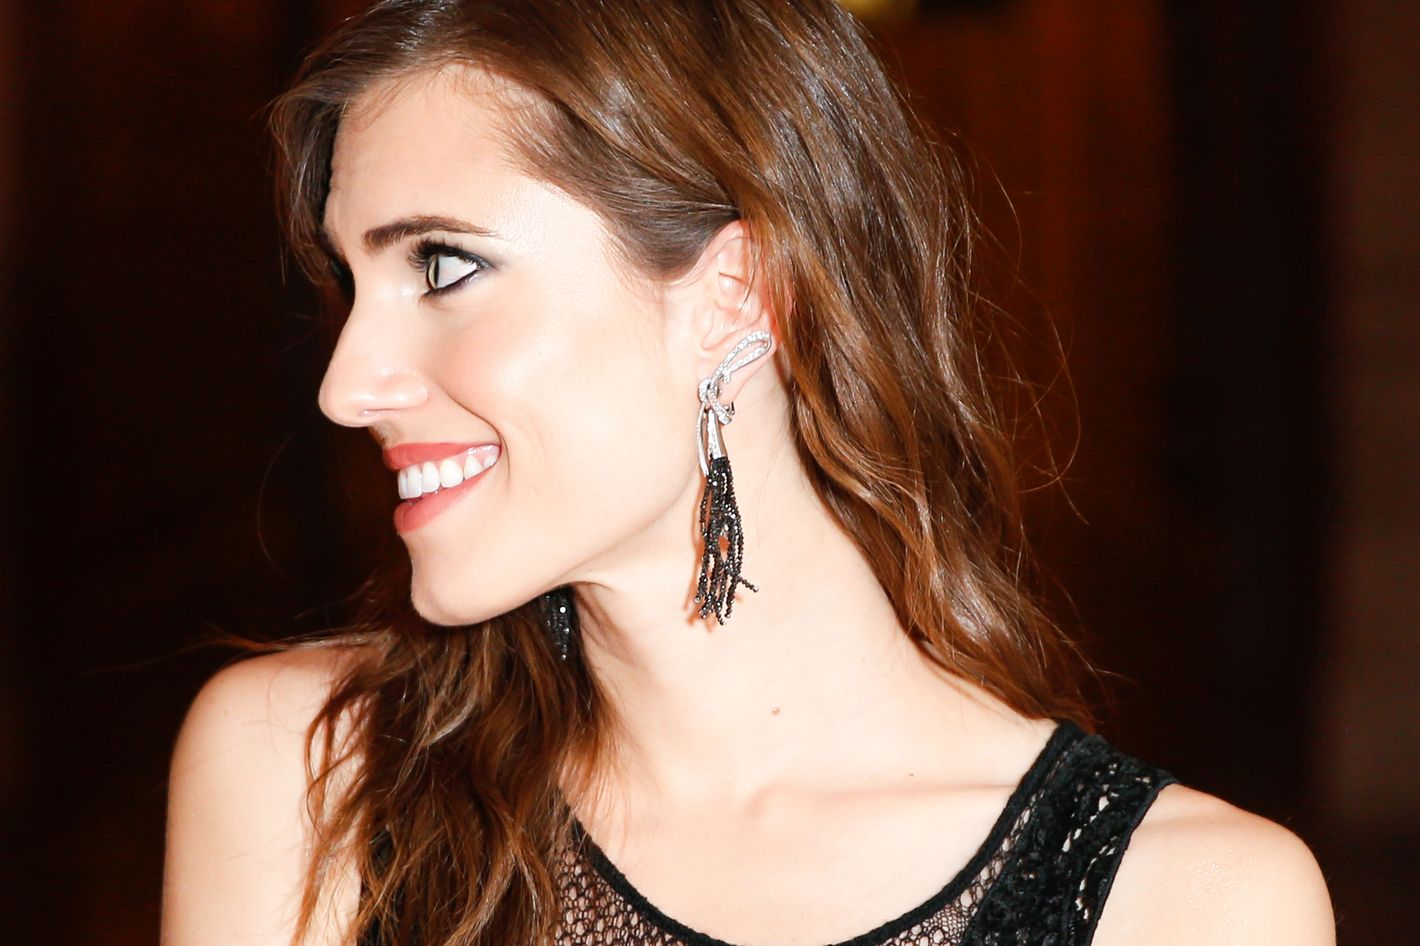 151d13060 Allison Williams Pierced Her Ear With a Safety Pin